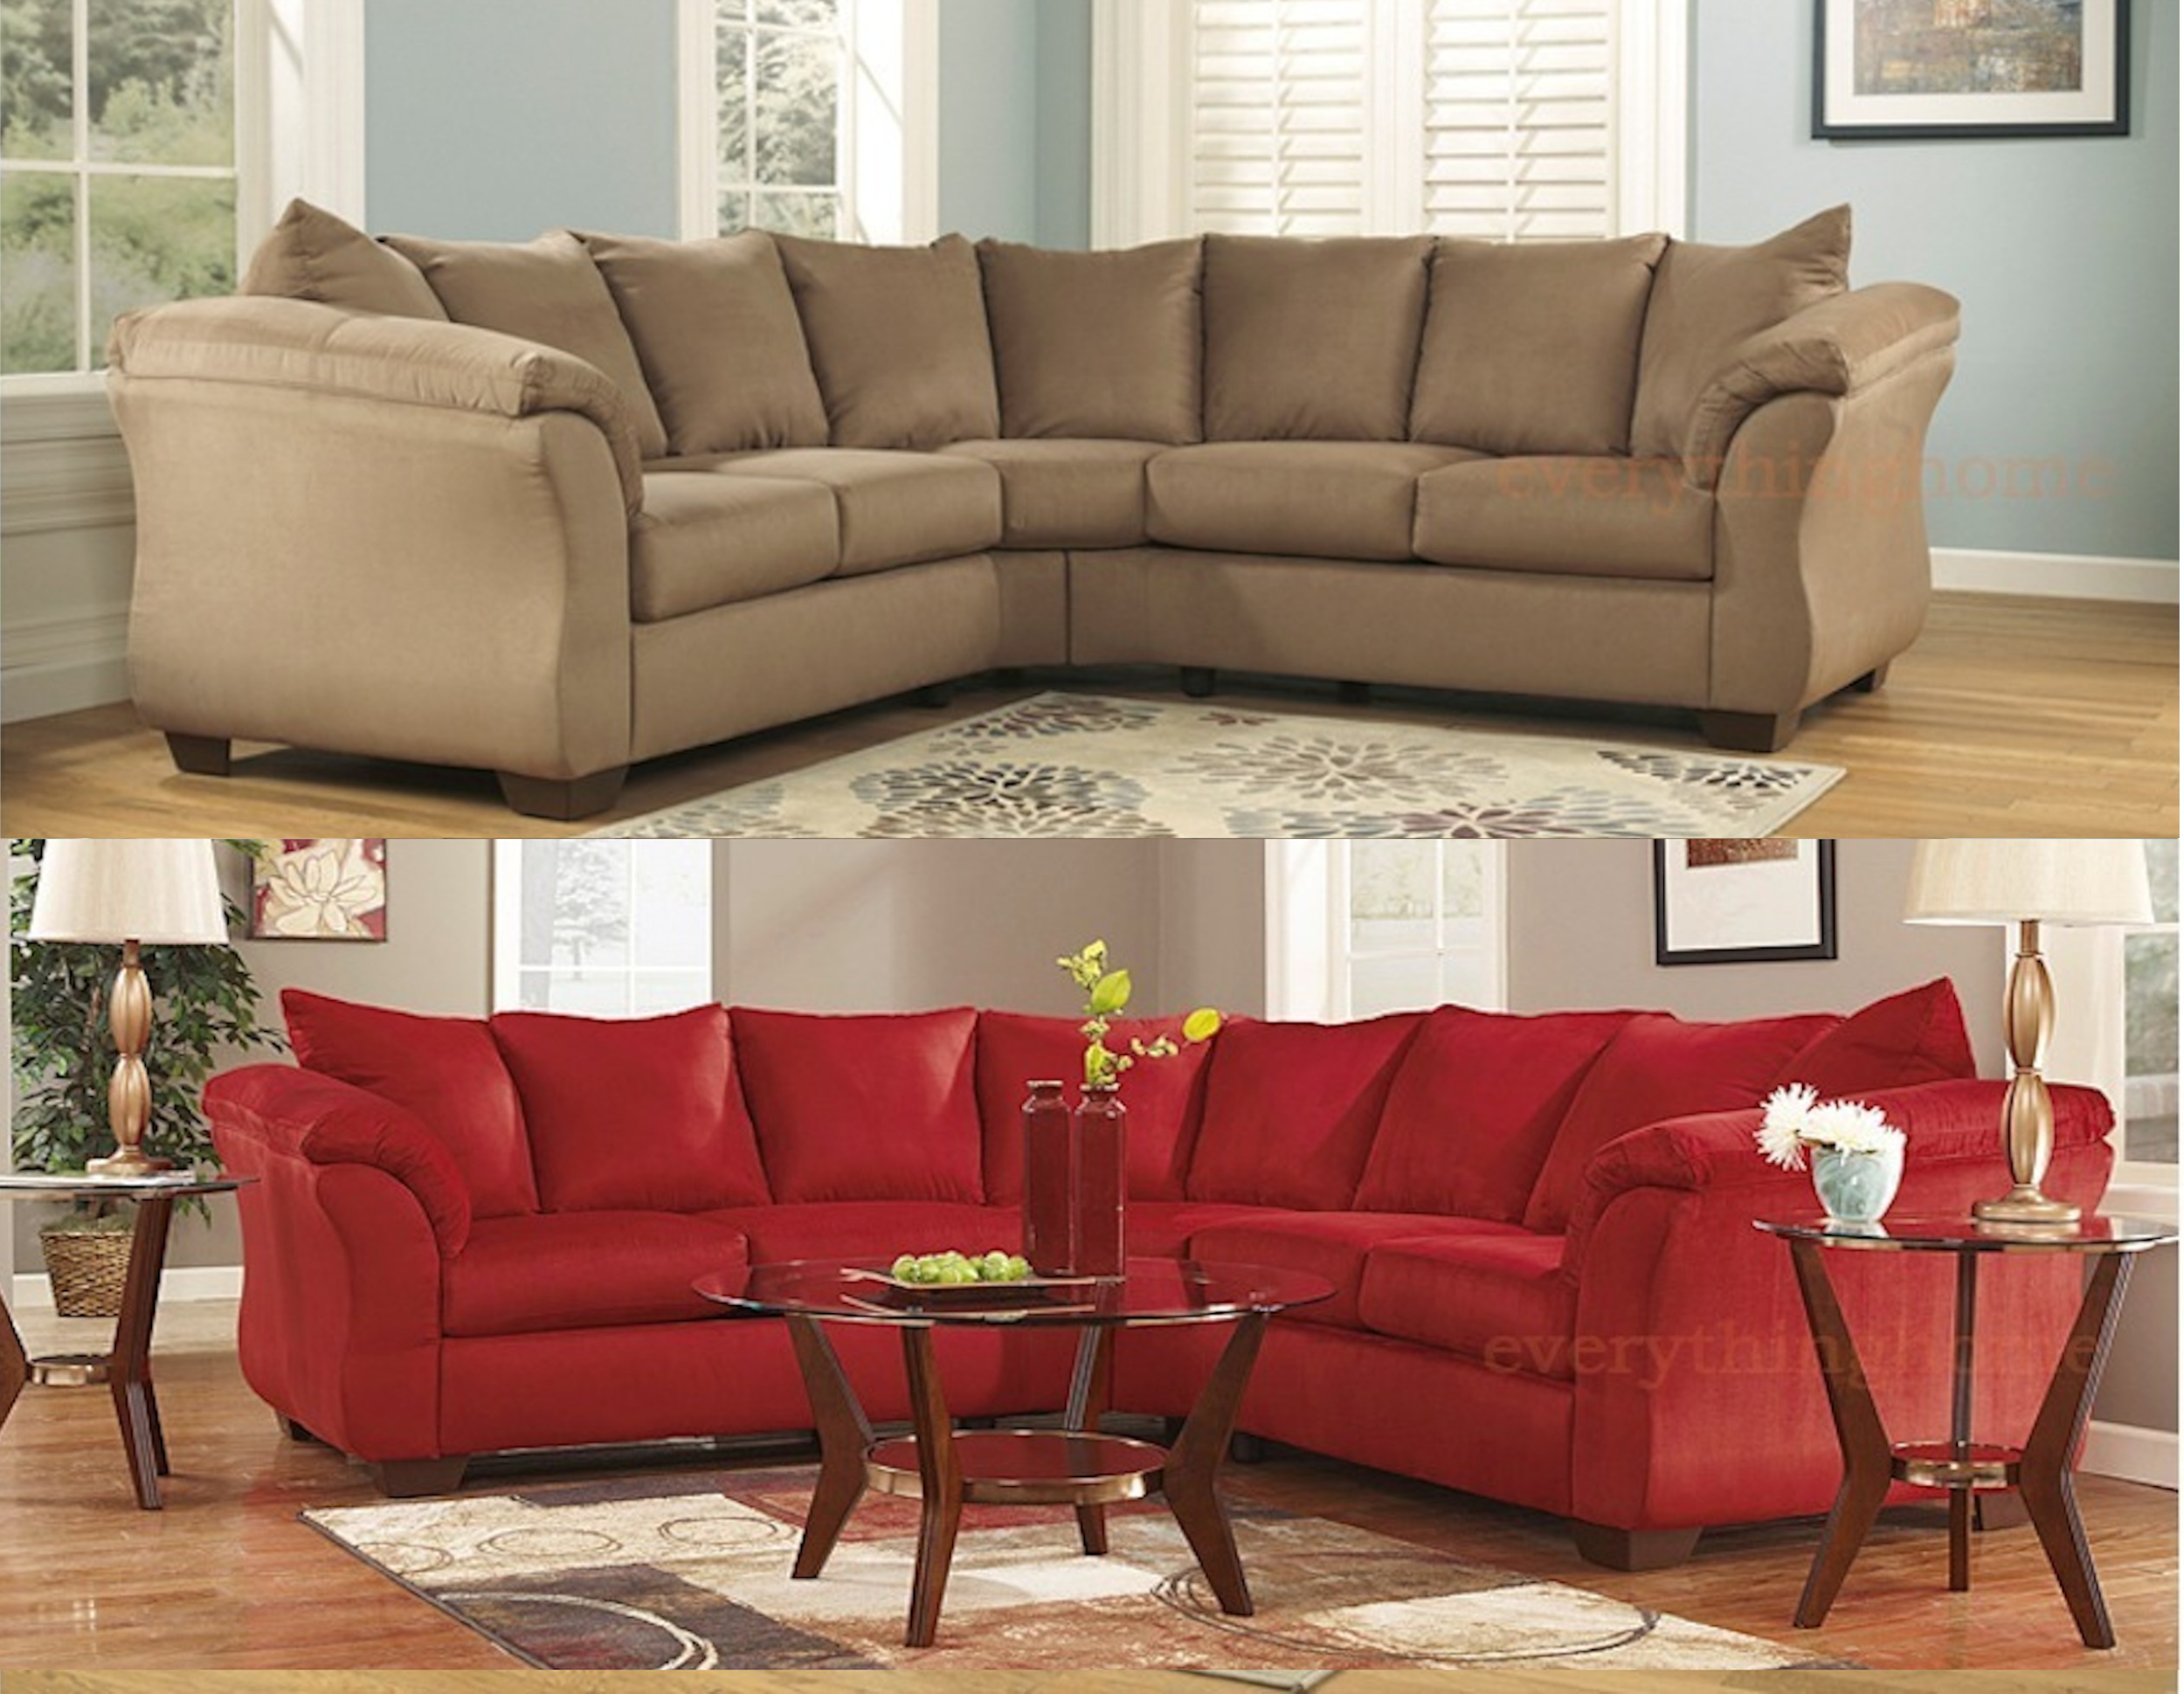 NEW ASHLEY DARCY SIGNATURE FABRIC UPHOLSTERED SECTIONAL ...